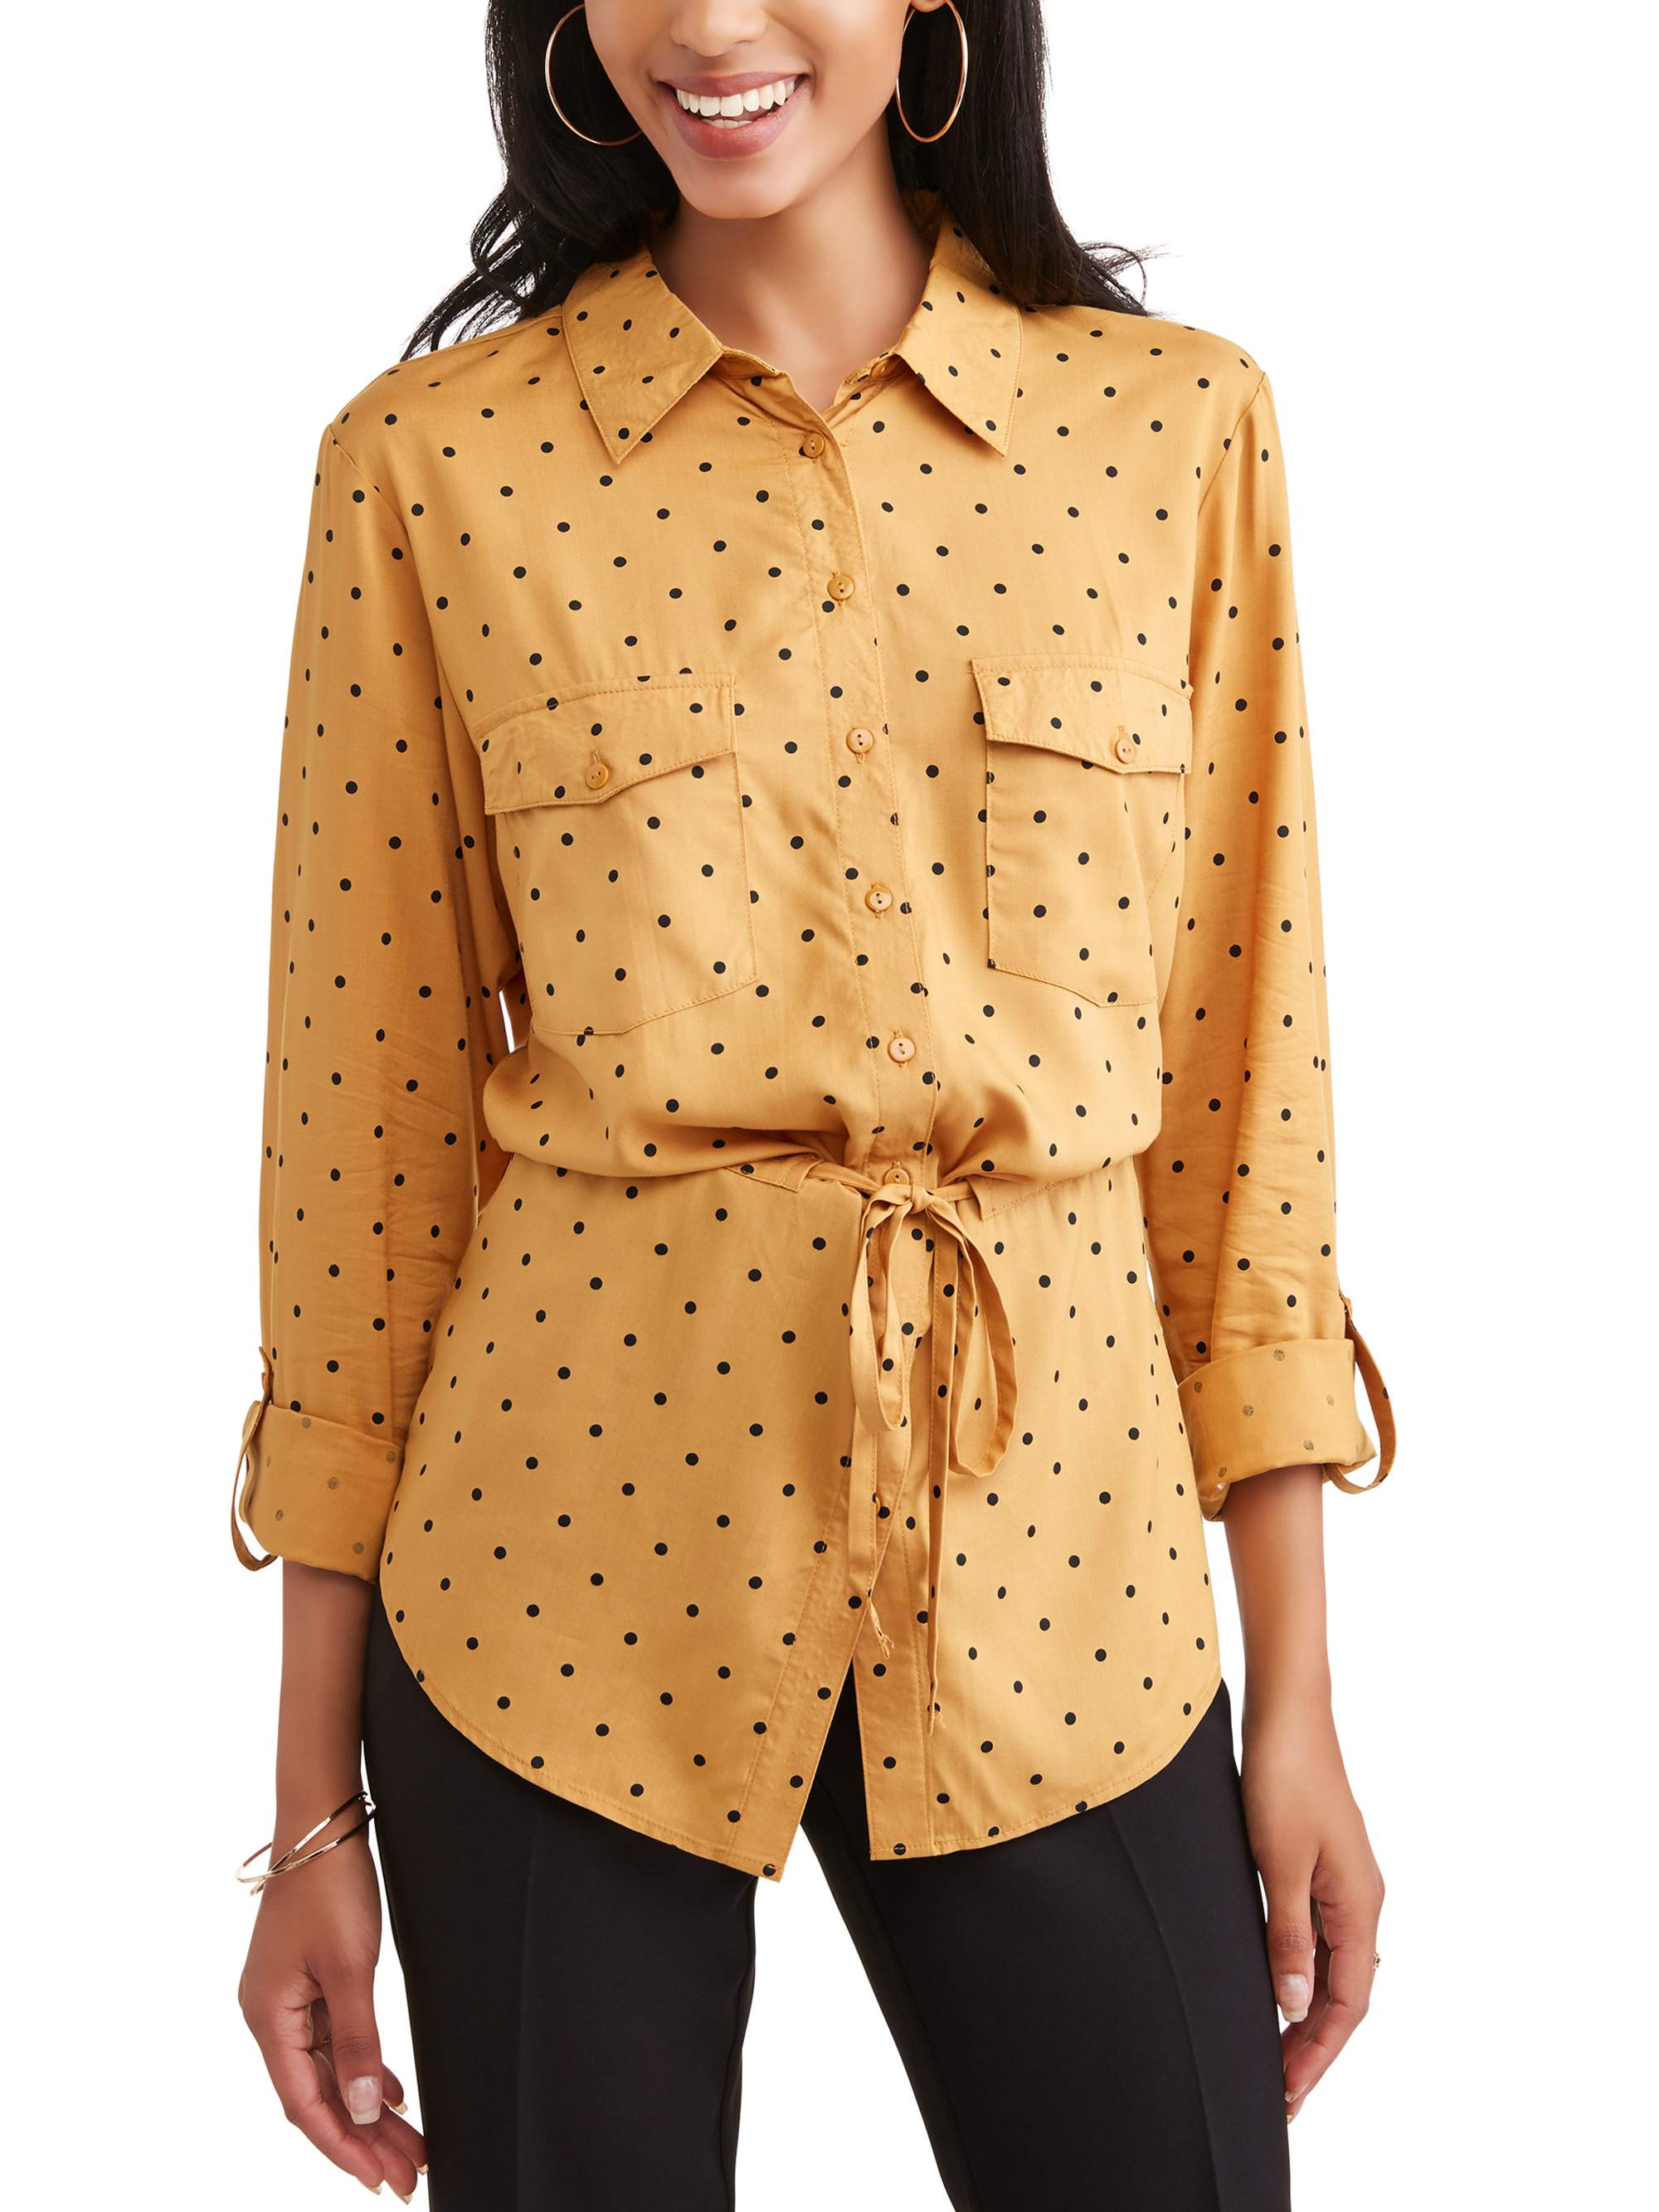 Alison Andrews Women's Roll Tab Sleeve Polka Dot Tunic Shirt by ALISON ANDREWS- 4_8